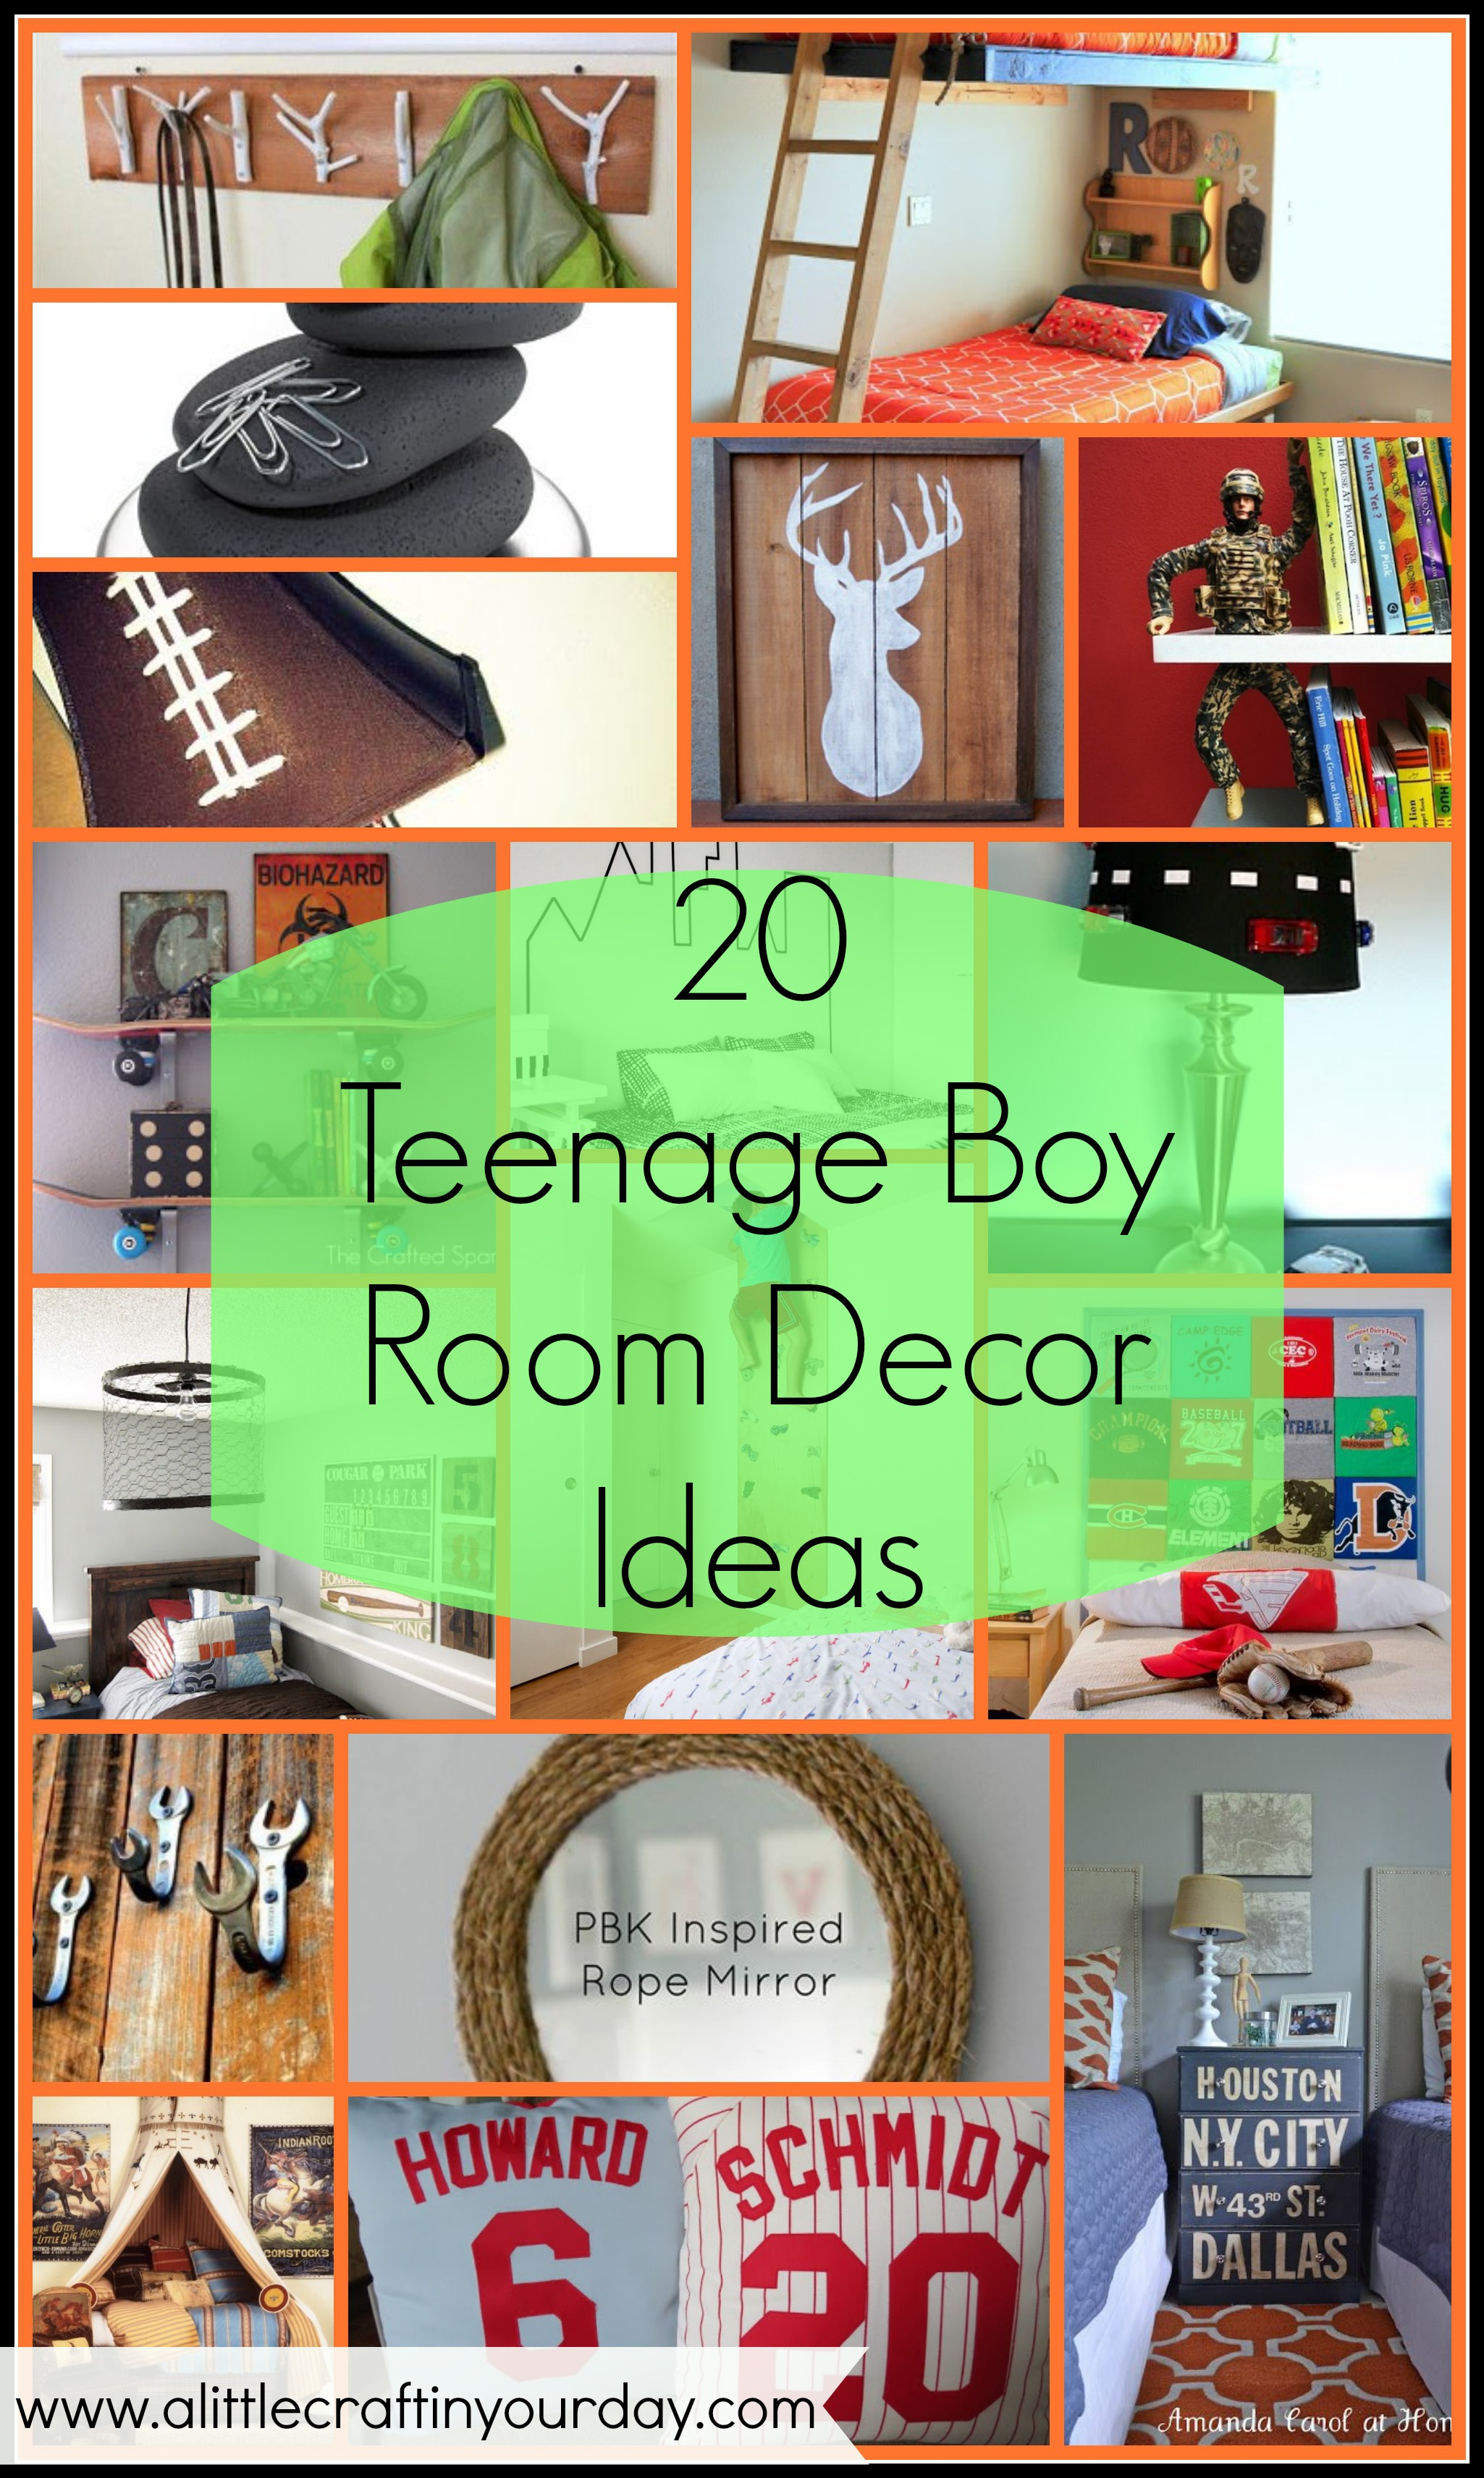 8/31 | 20 Teenage Boy Room Decor Ideas. 20_Teenage_Boy_Room_decor_ideas